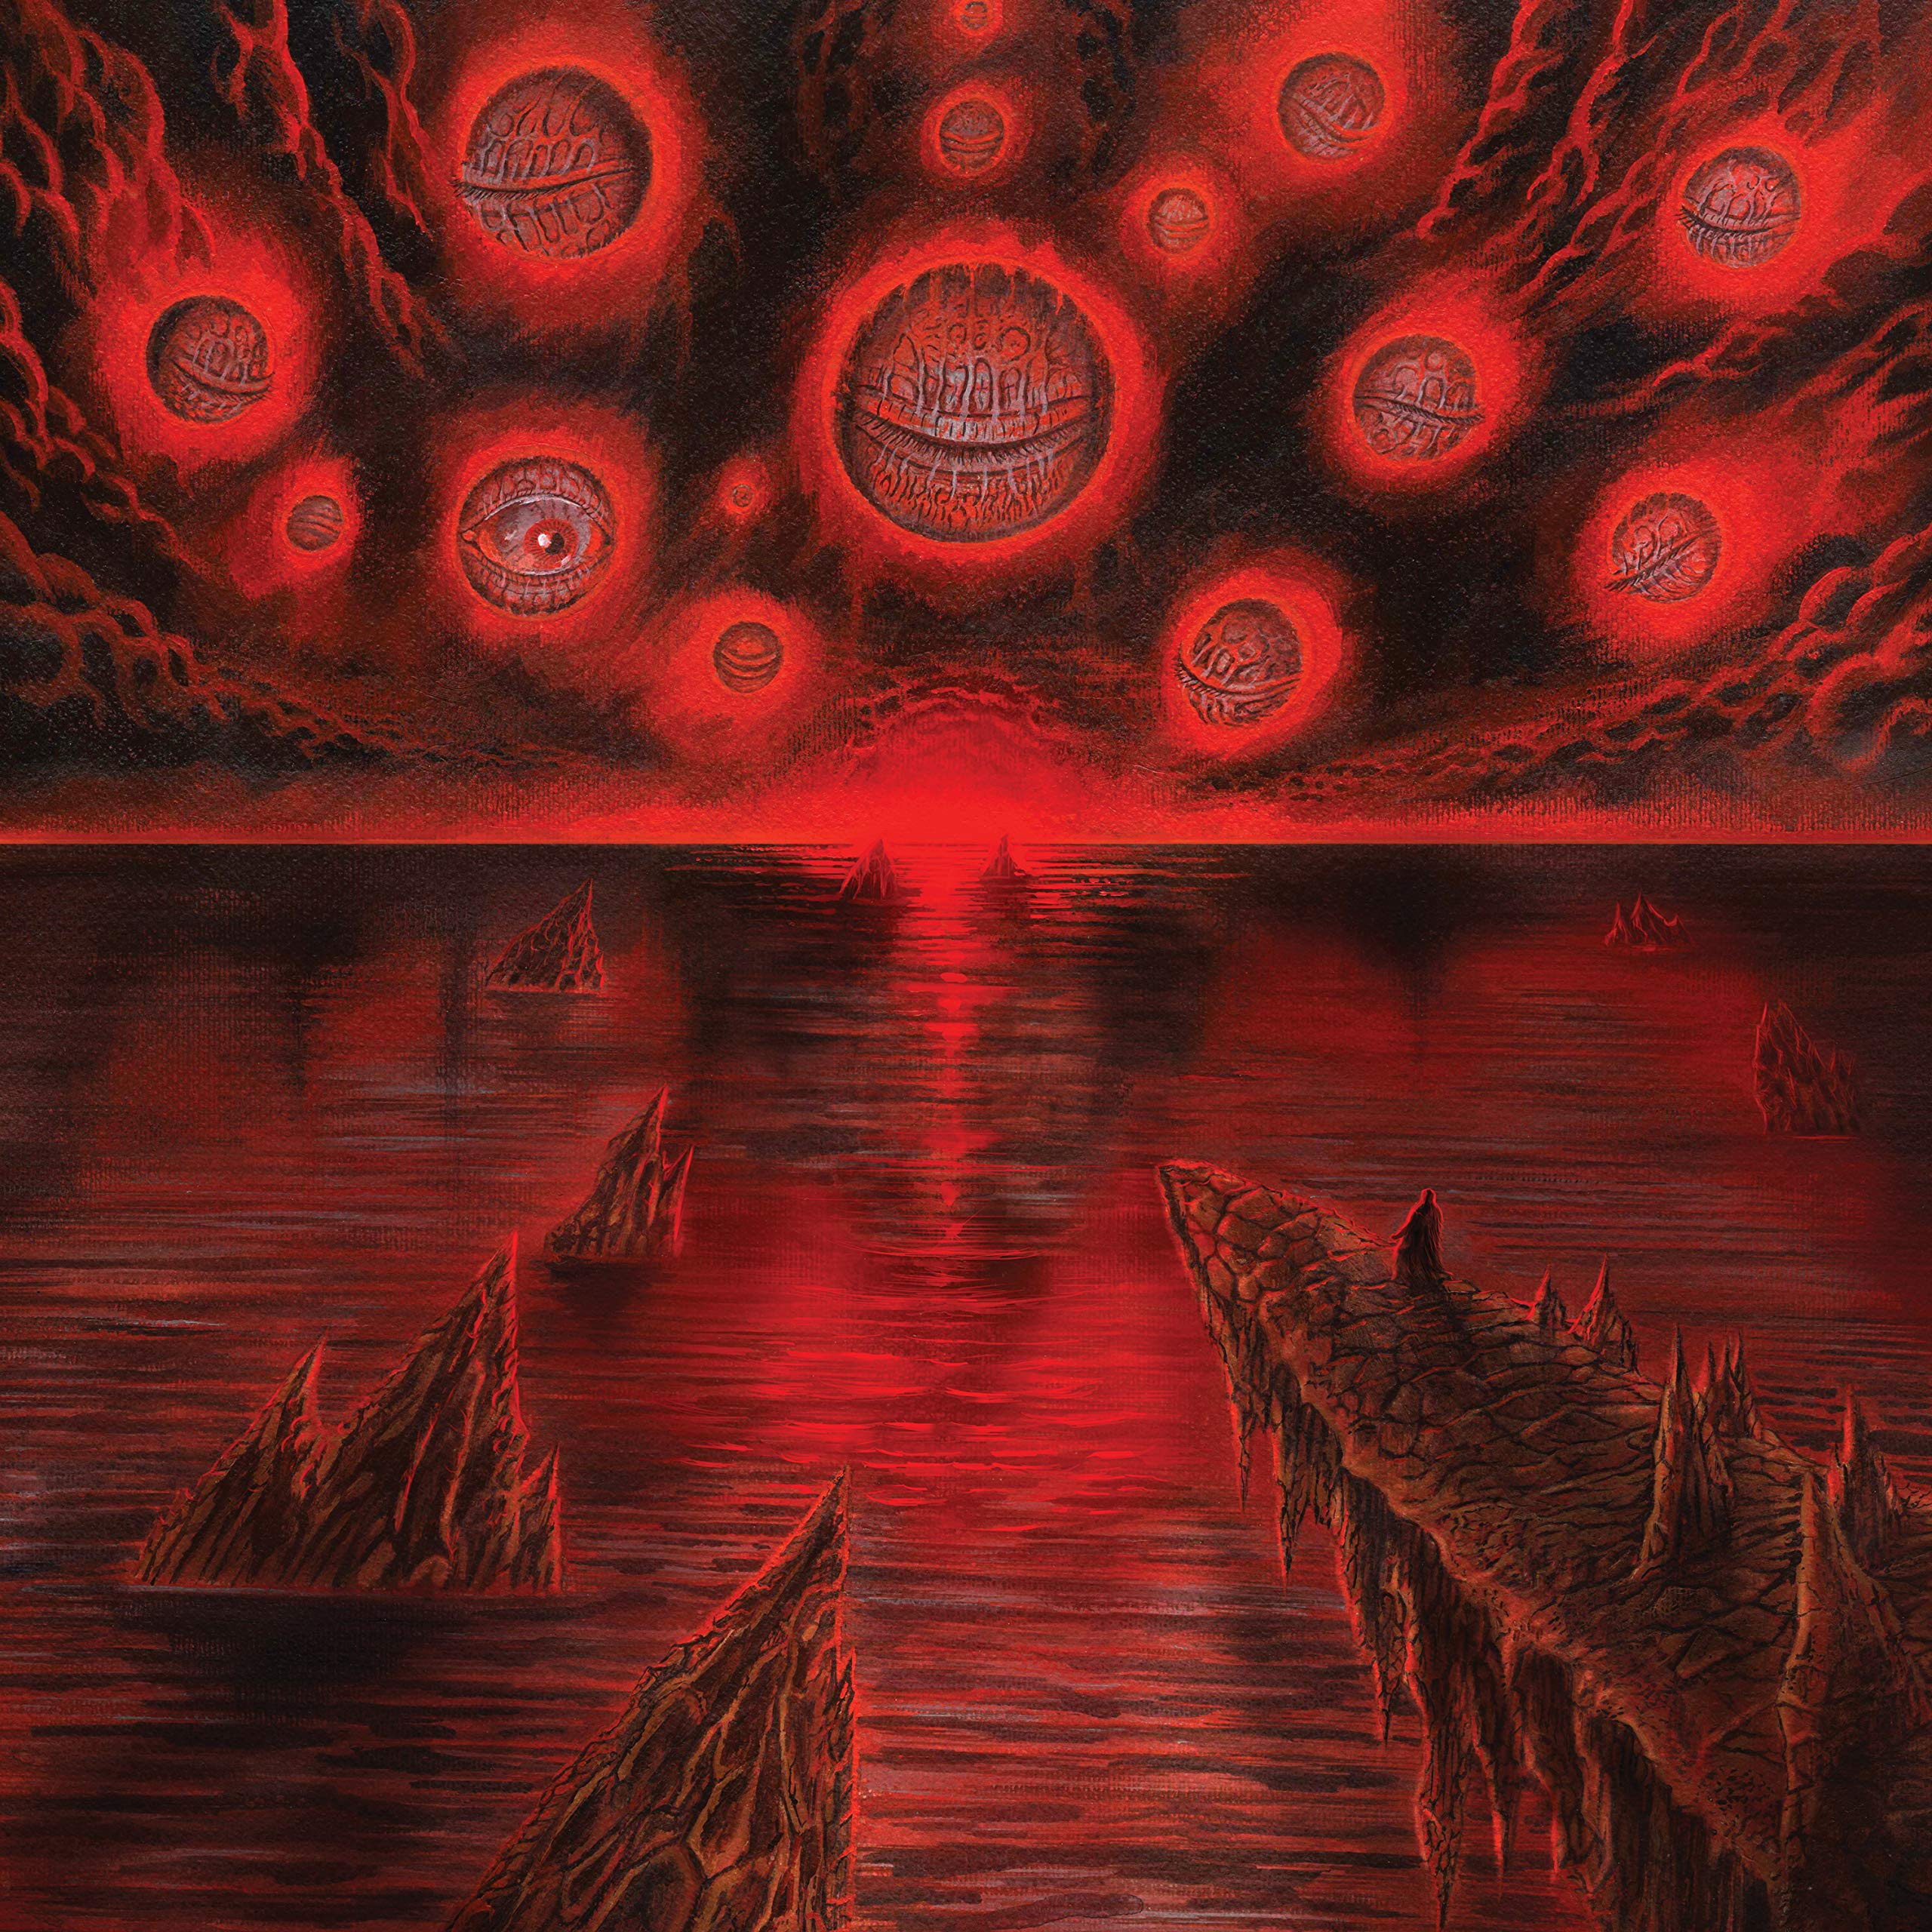 Gorephilia - In the Eye of Nothing (2020) [FLAC] Download